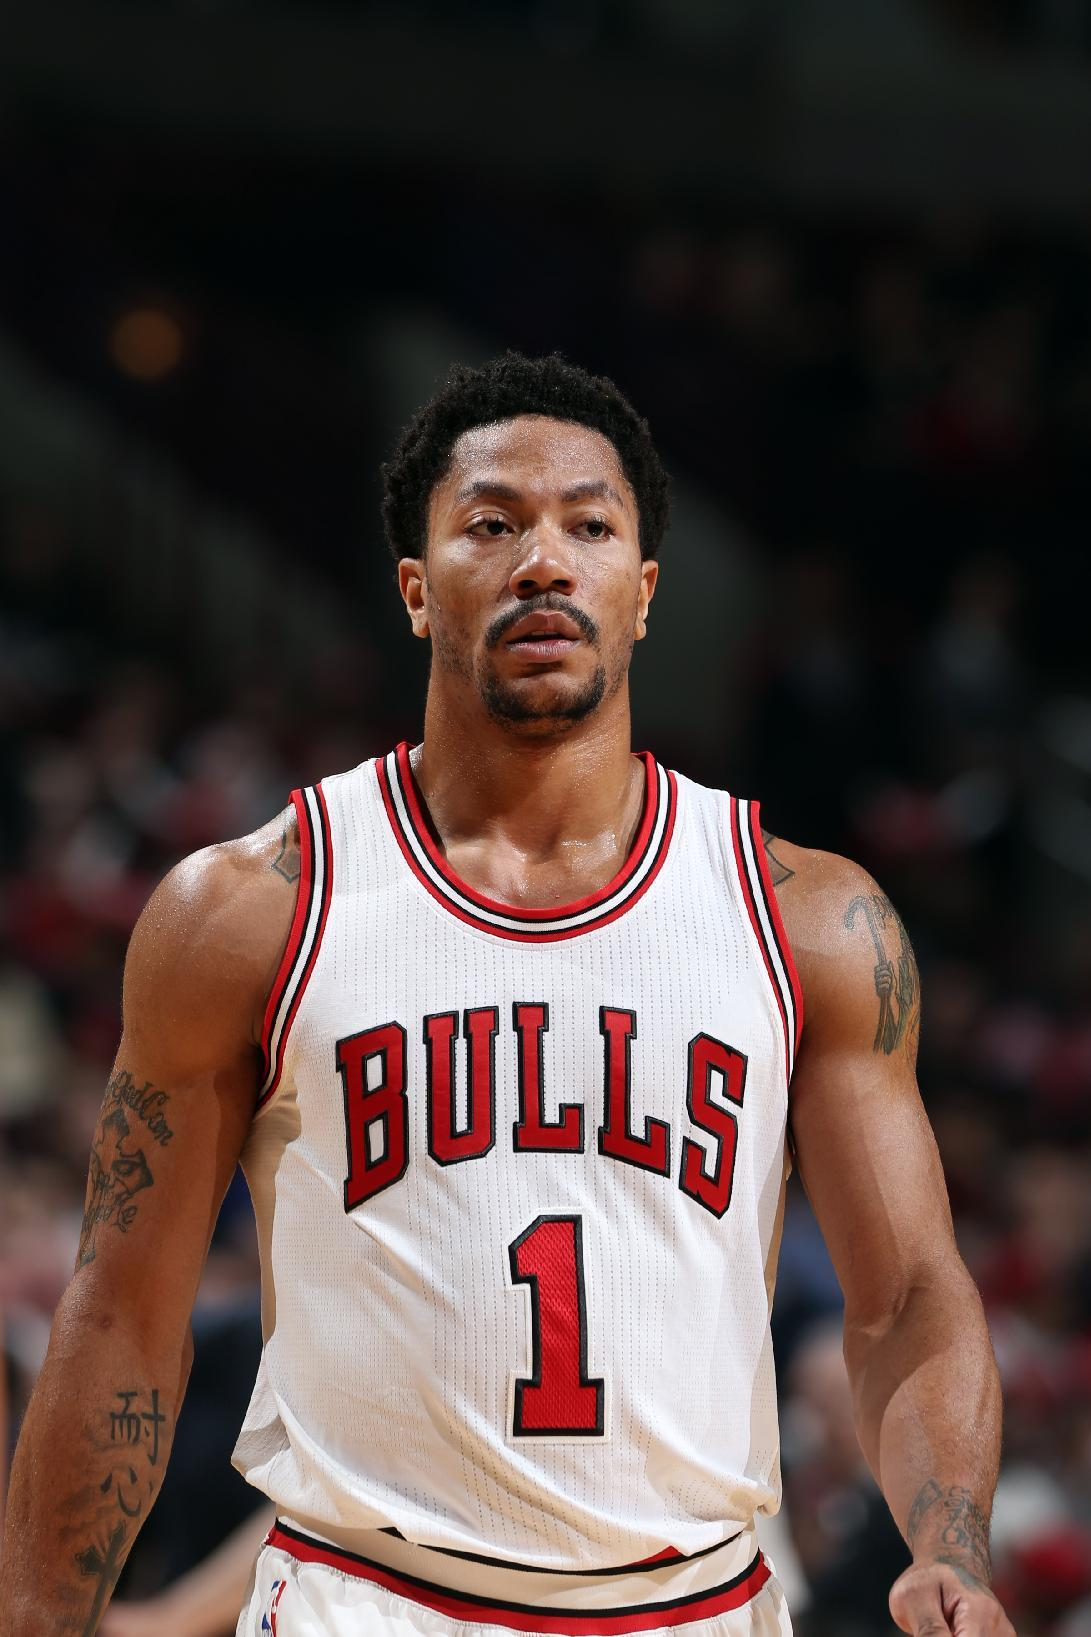 Chicago's Rose out again with knee injury, needs surgery